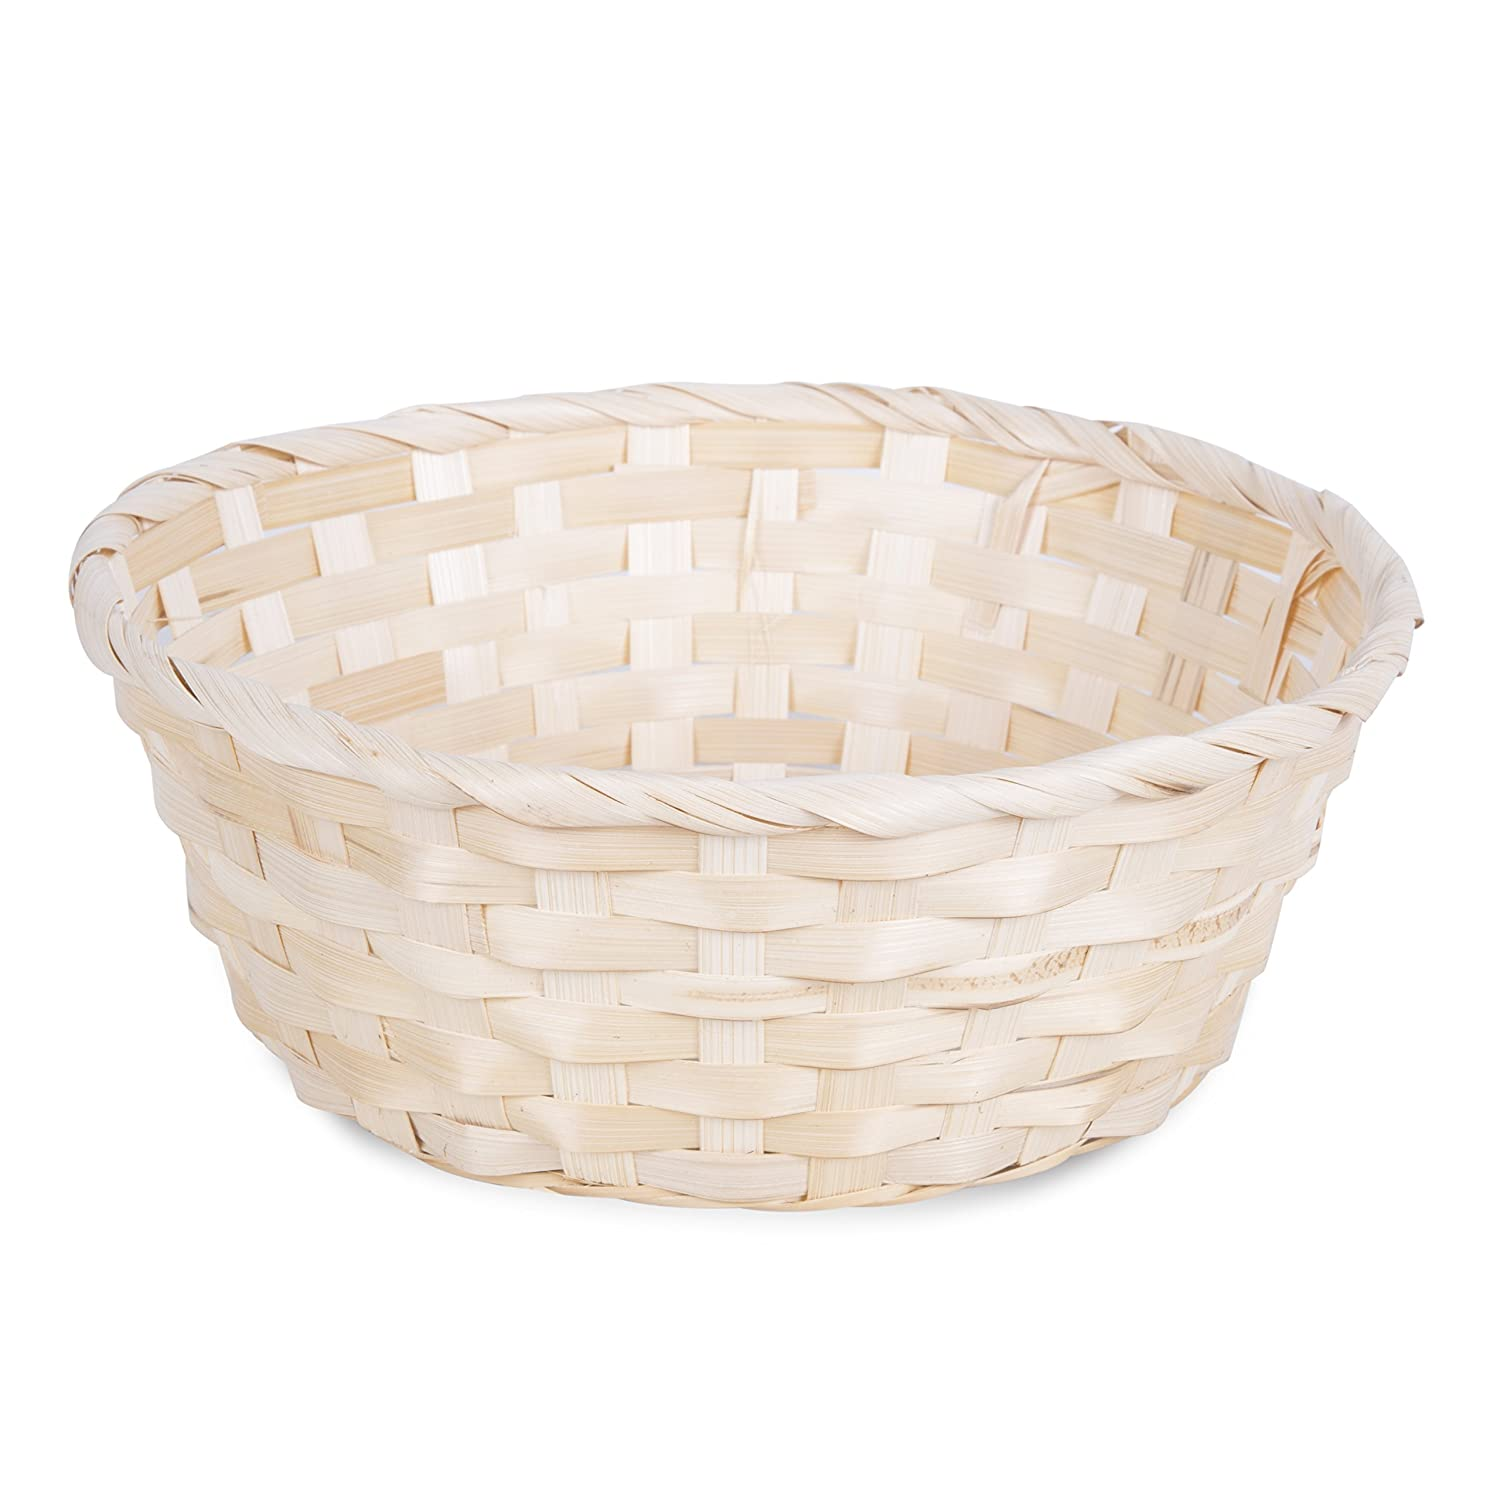 10 x Bamboo Wicker Bread Basket Storage Hamper Display Tray, Natural or Red (Medium-20cm, Natural) Basic House